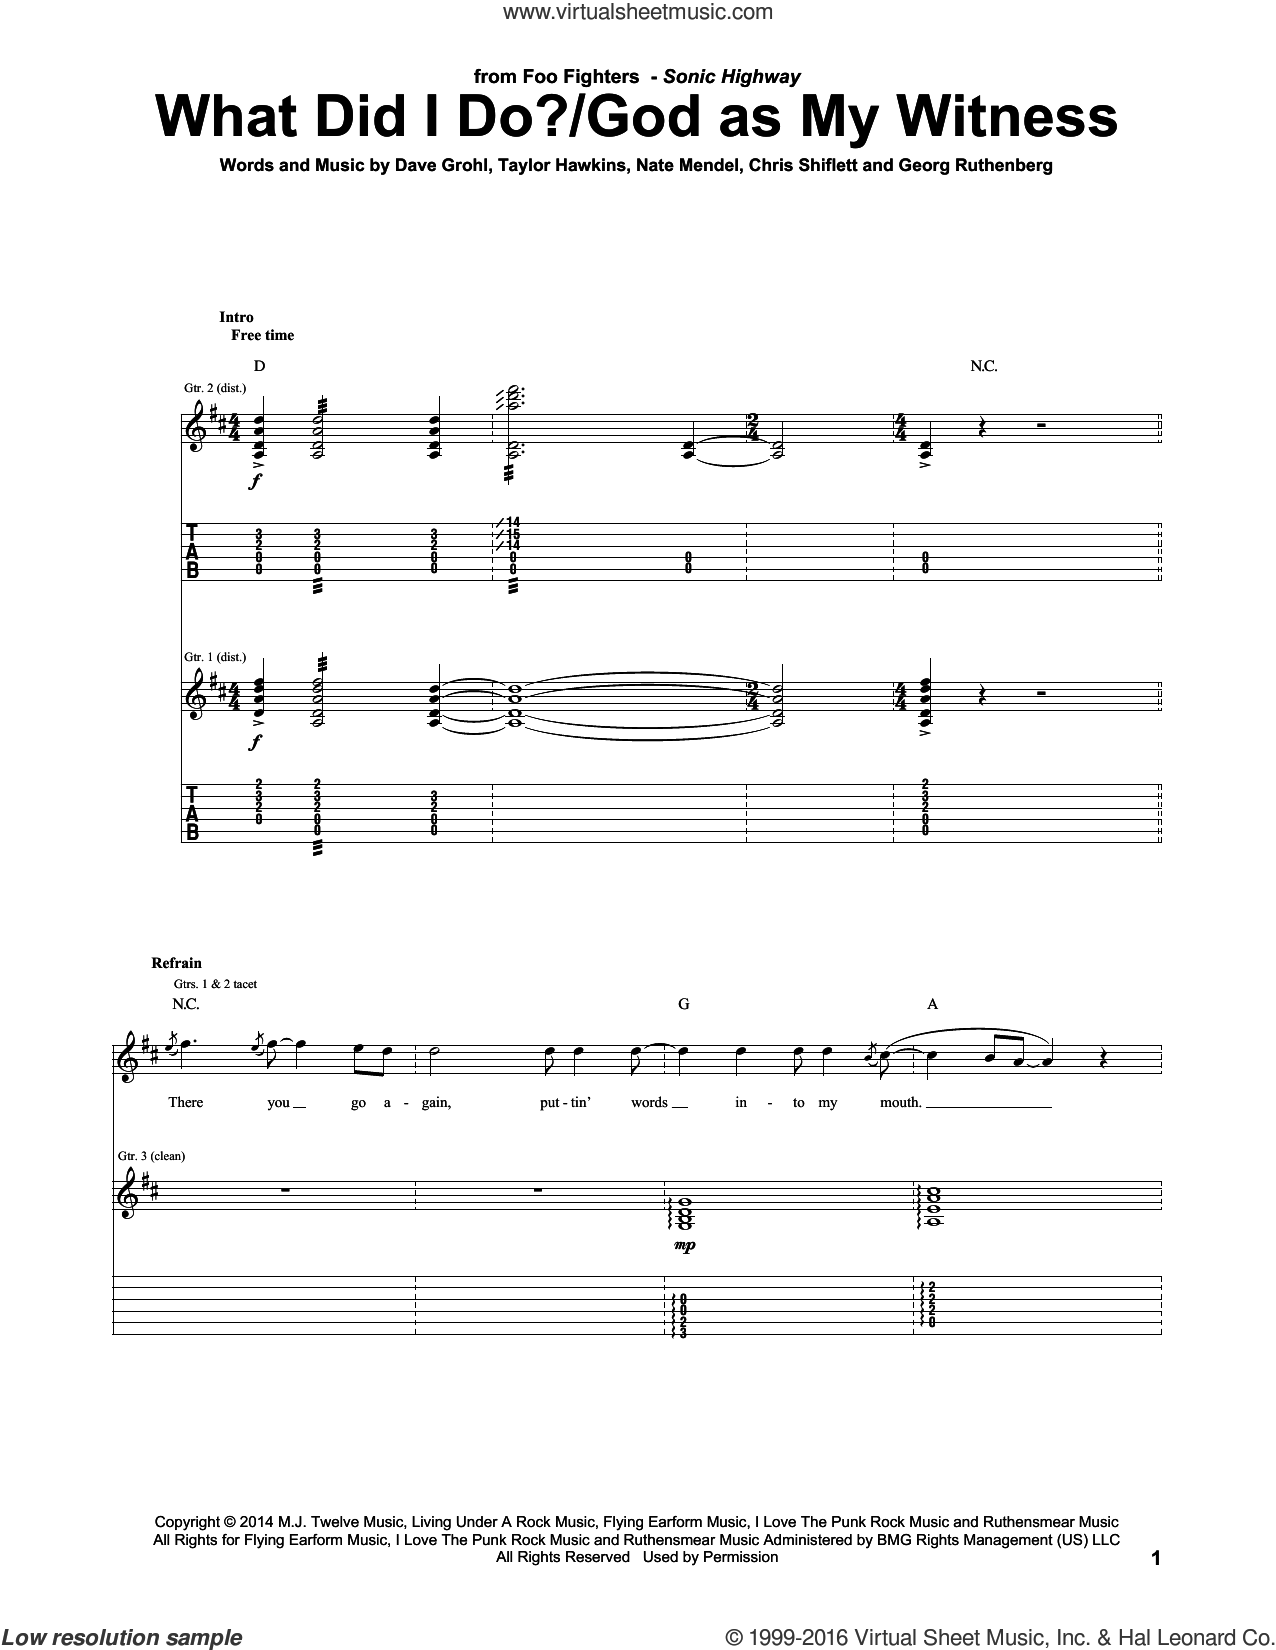 What Did I Do?/God As My Witness sheet music for guitar (tablature) by Foo Fighters, Chris Shiflett, Dave Grohl, Georg Ruthenberg, Nate Mendel and Taylor Hawkins, intermediate skill level